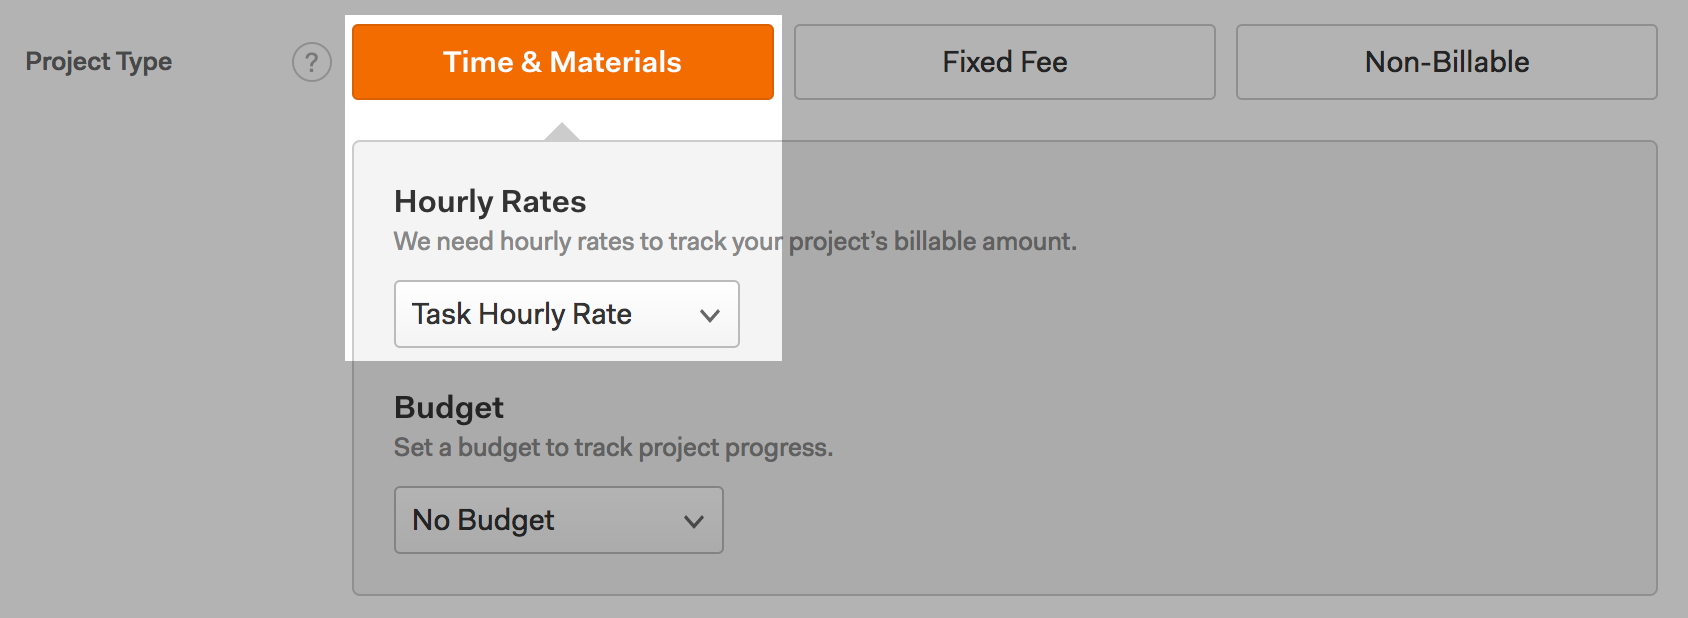 Screenshot of the New/Edit Project page for a Time & Materials project with the Task Hourly Rate billing method selected